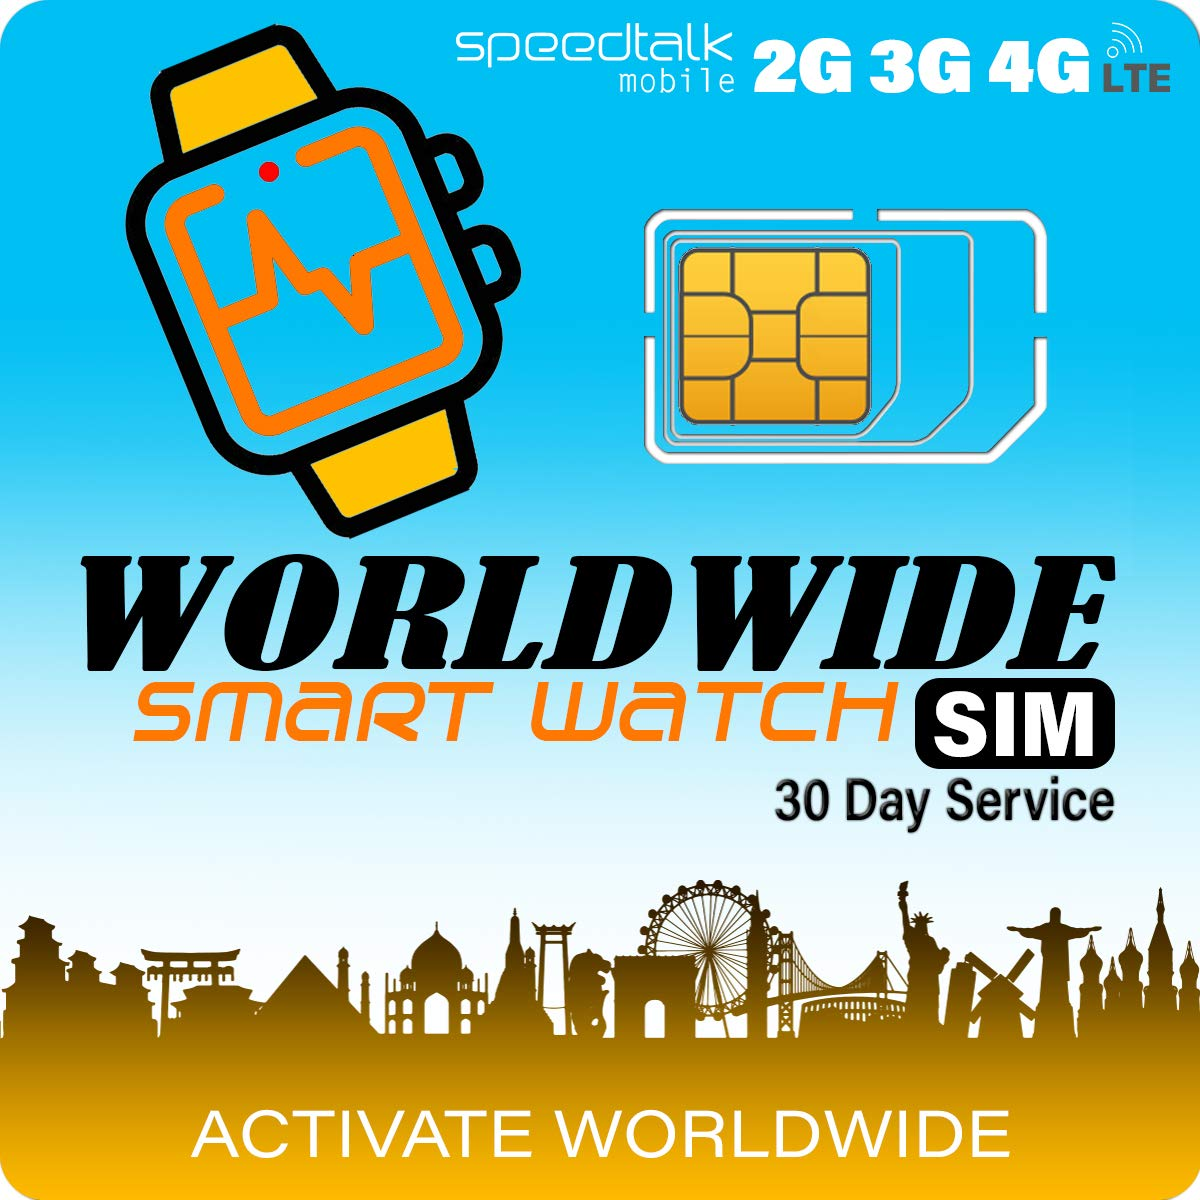 Works in 200 Countries - Smart Watch Worldwide SIM Card - Compatible with 2G 3G 4G Smartwatches and Wearables - Coverage in 200 Countries